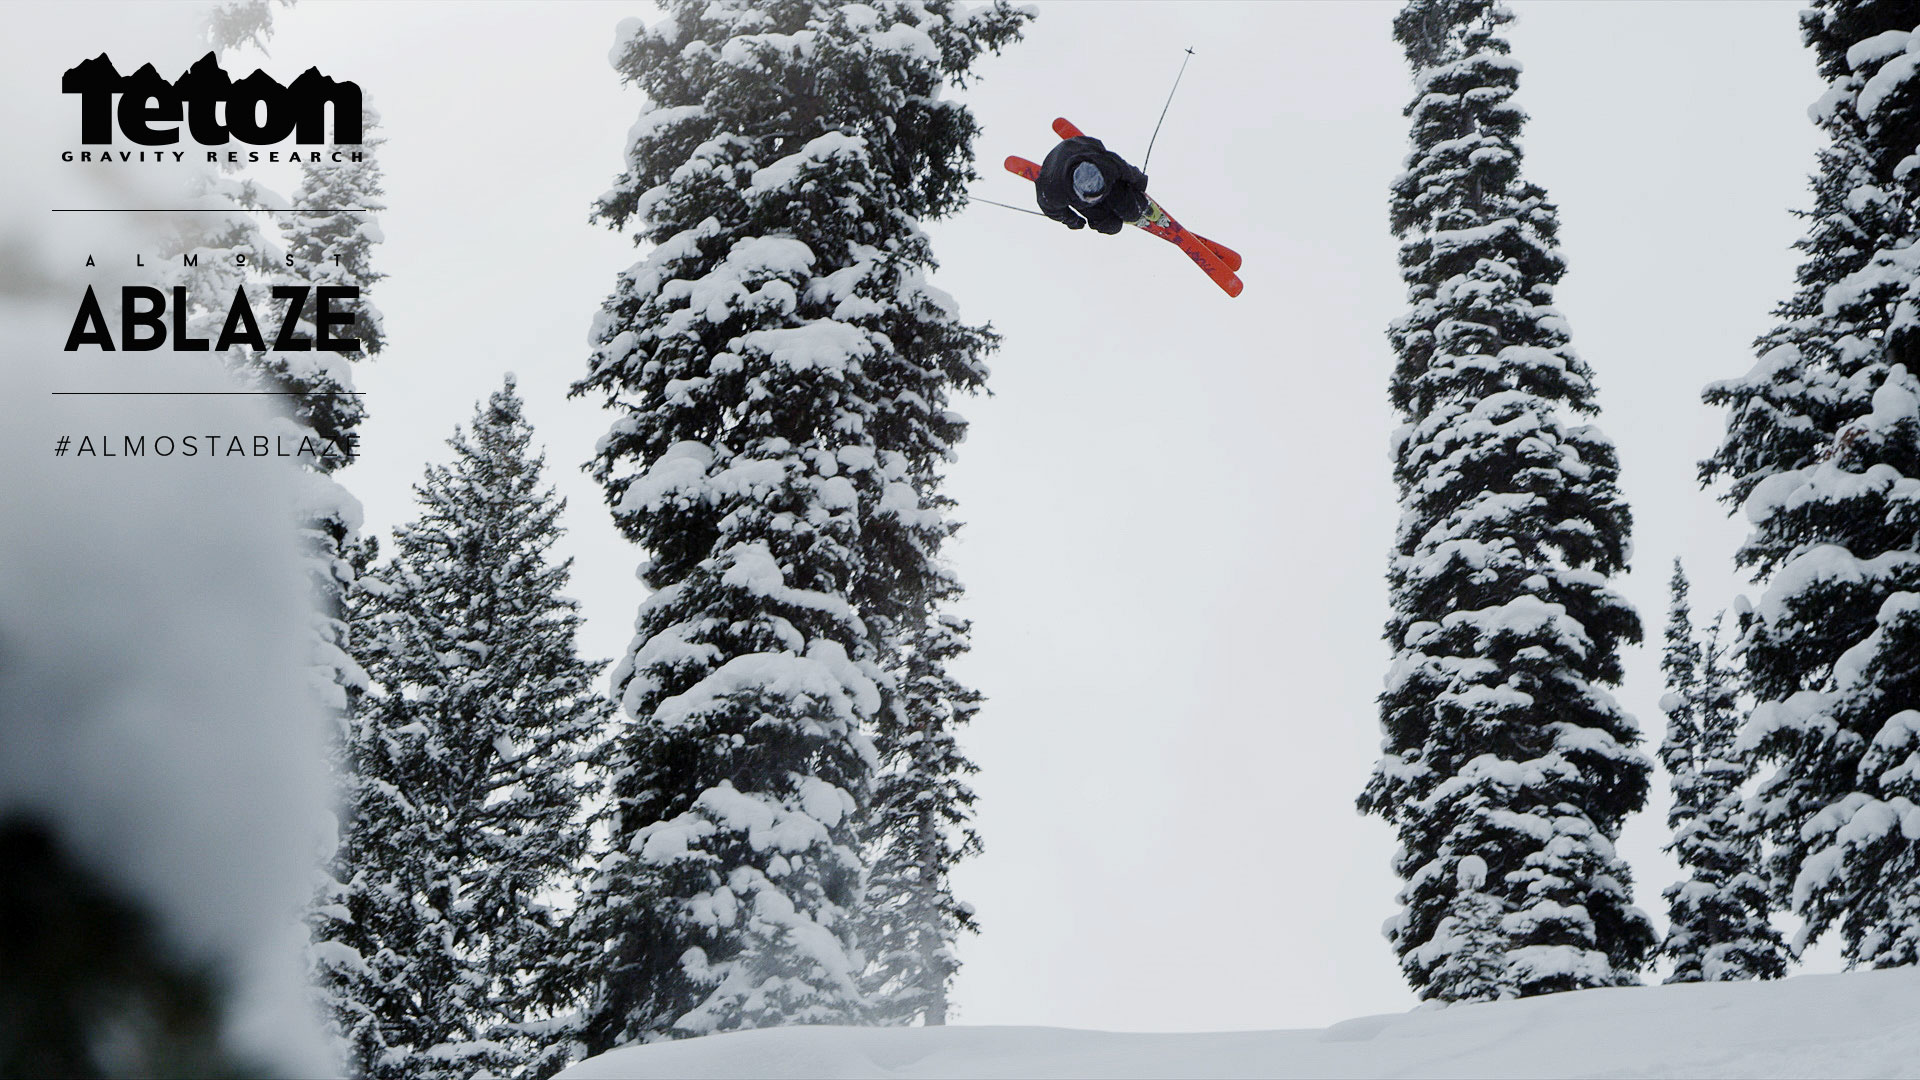 A skiier performs a front-flip.